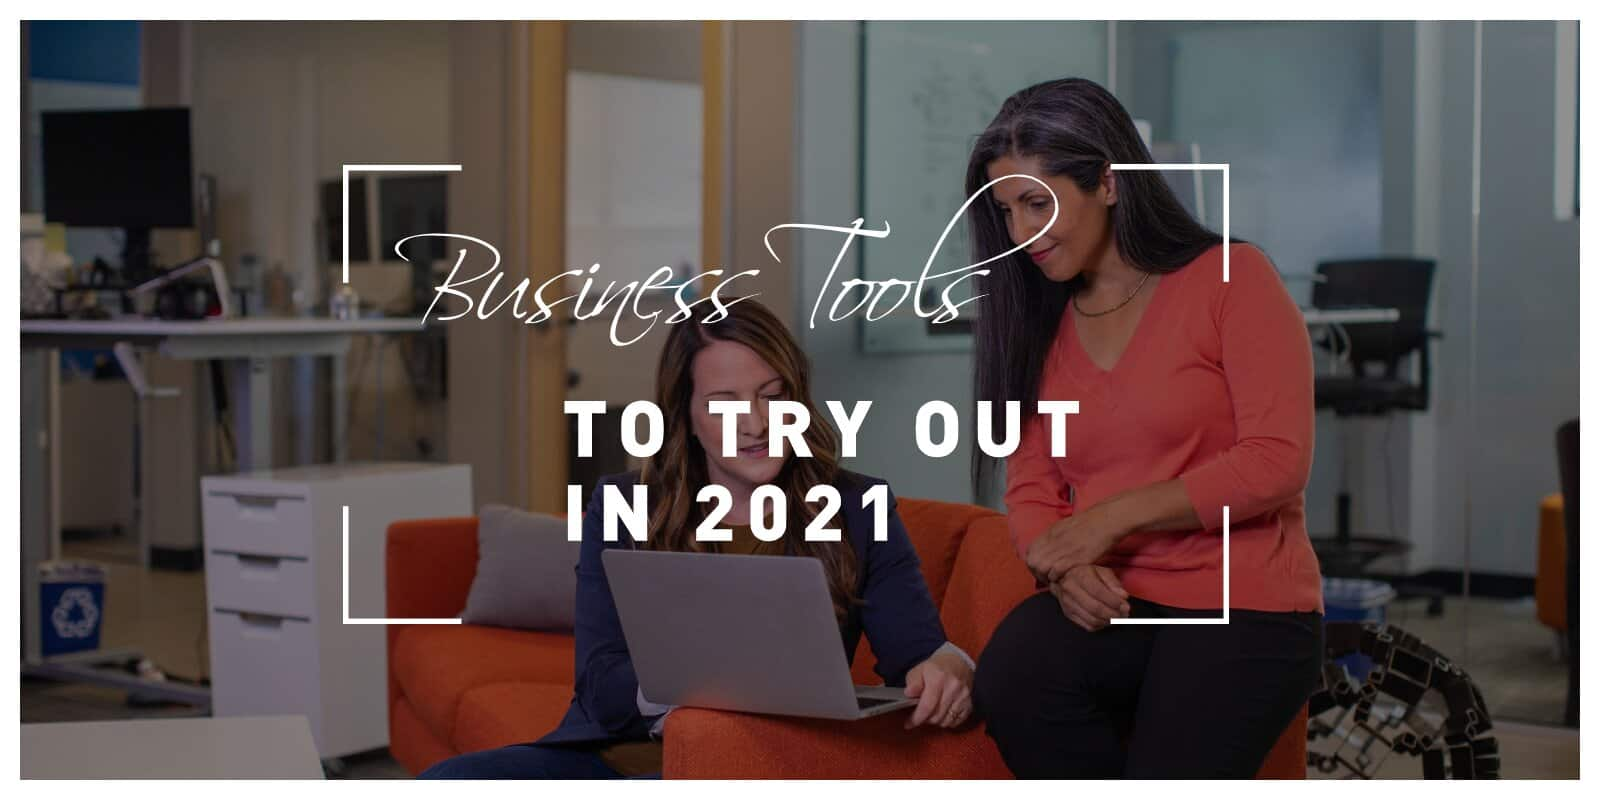 Free Business Tools to Try Out in 2021 for Free